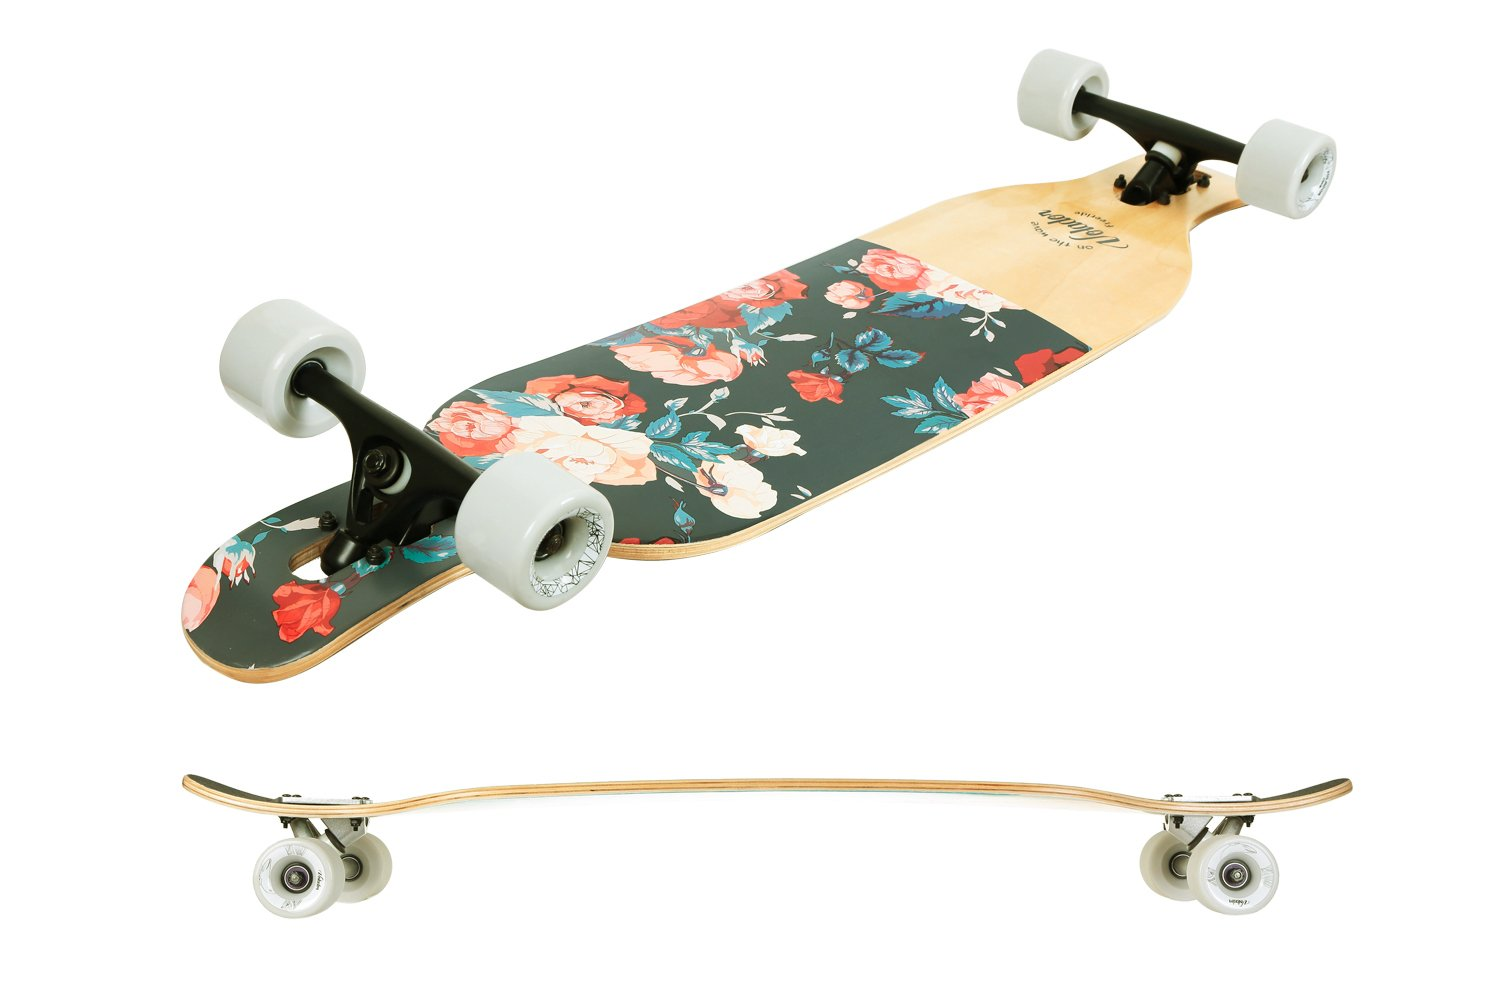 Drop Through Deck - Camber c Details about  /VOLADOR 42inch Freeride Longboard Complete Cruiser